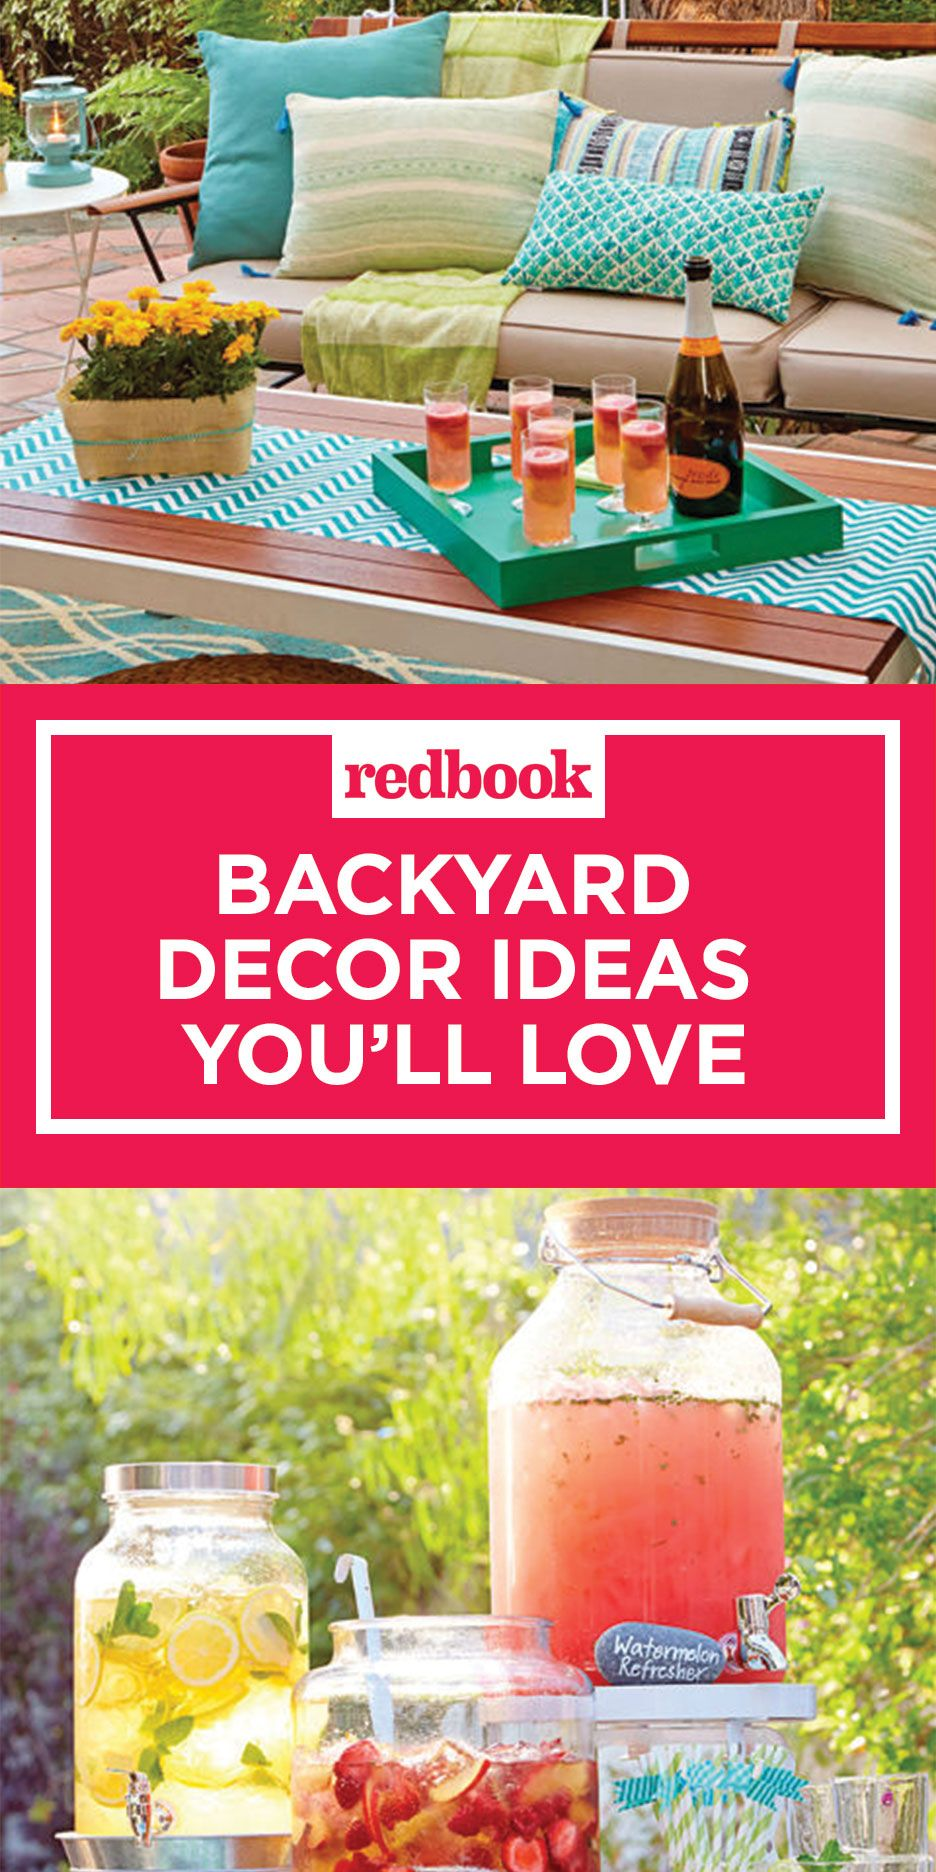 Picnic Decor 14 Best Backyard Party Ideas For Adults Summer Entertaining Decor